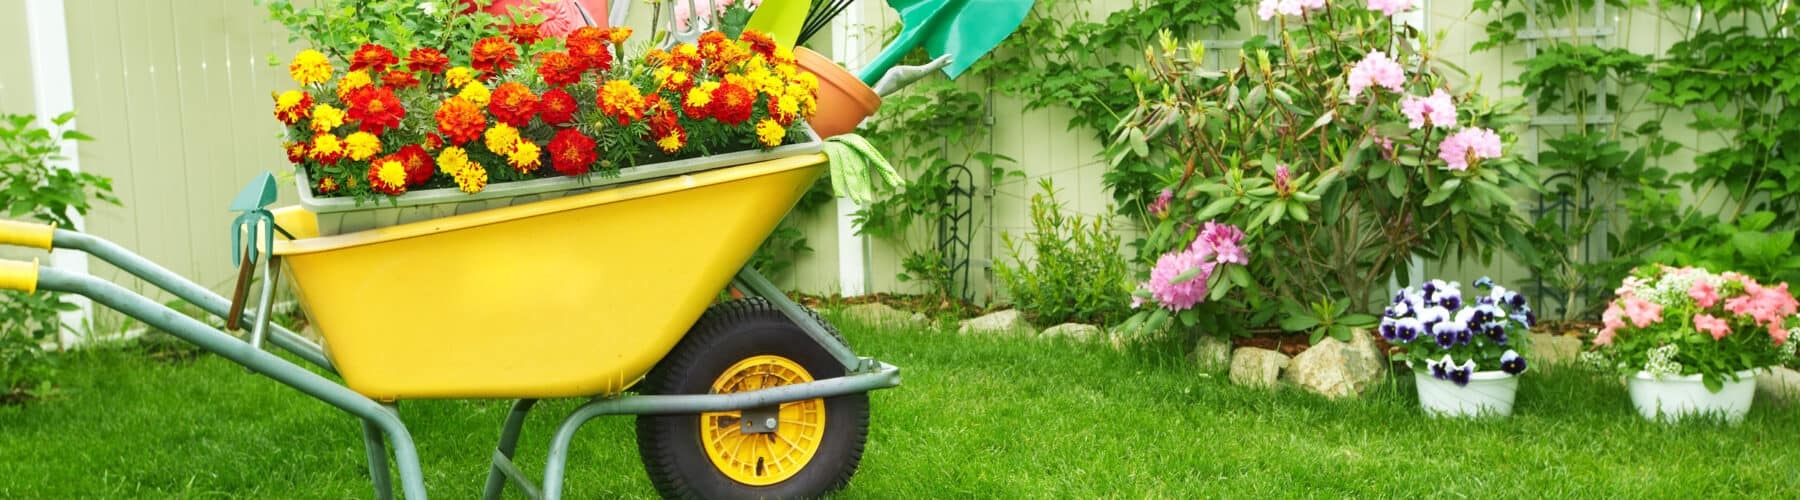 6 Steps To A Healthier Yard This Spring Norfolk Hardware Home Center